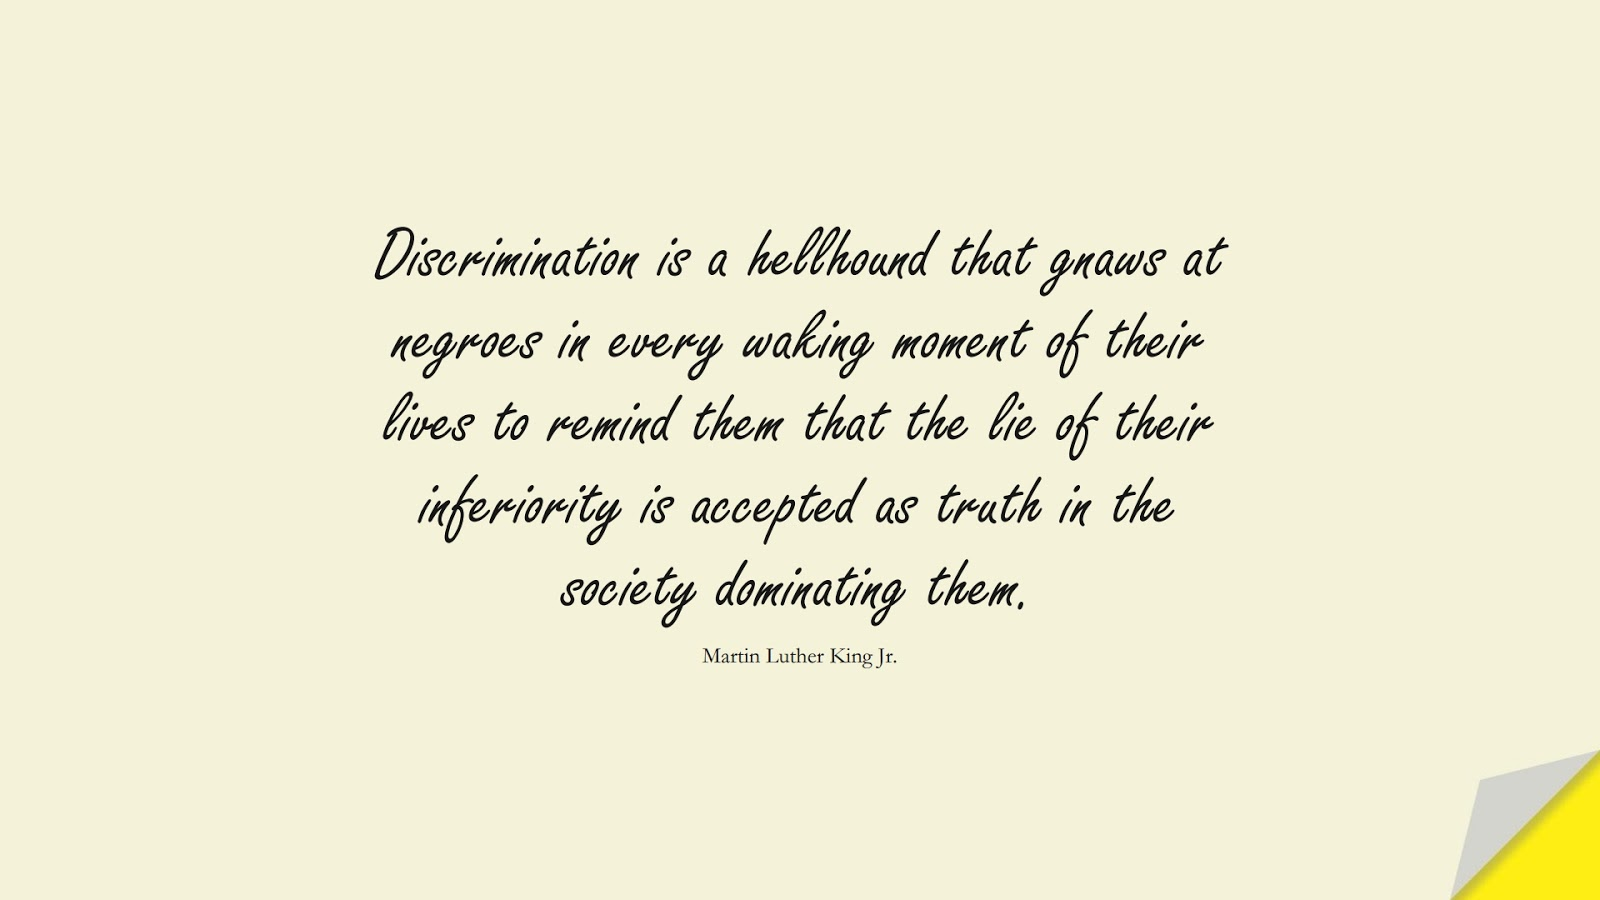 Discrimination is a hellhound that gnaws at negroes in every waking moment of their lives to remind them that the lie of their inferiority is accepted as truth in the society dominating them. (Martin Luther King Jr.);  #MartinLutherKingJrQuotes